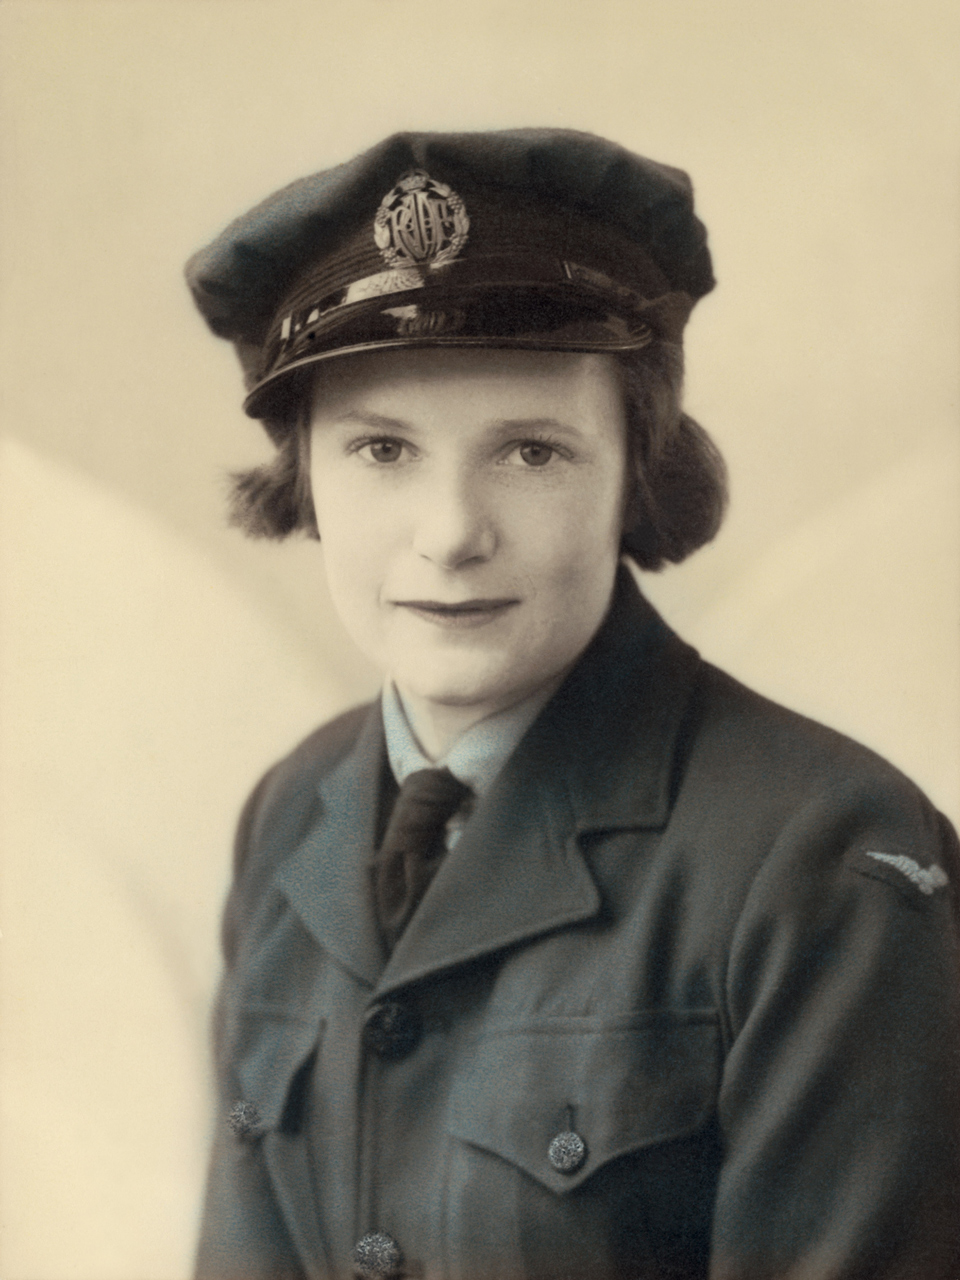 Studio portrait of 111548 Aircraftwoman Marie Isabel COOTE, taken circa 1944. The photographer is unknown. This version of the portrait has been hand-coloured. All photographs shown here are from the Mollie WILSON (nee COOTE) collection unless otherwise noted.